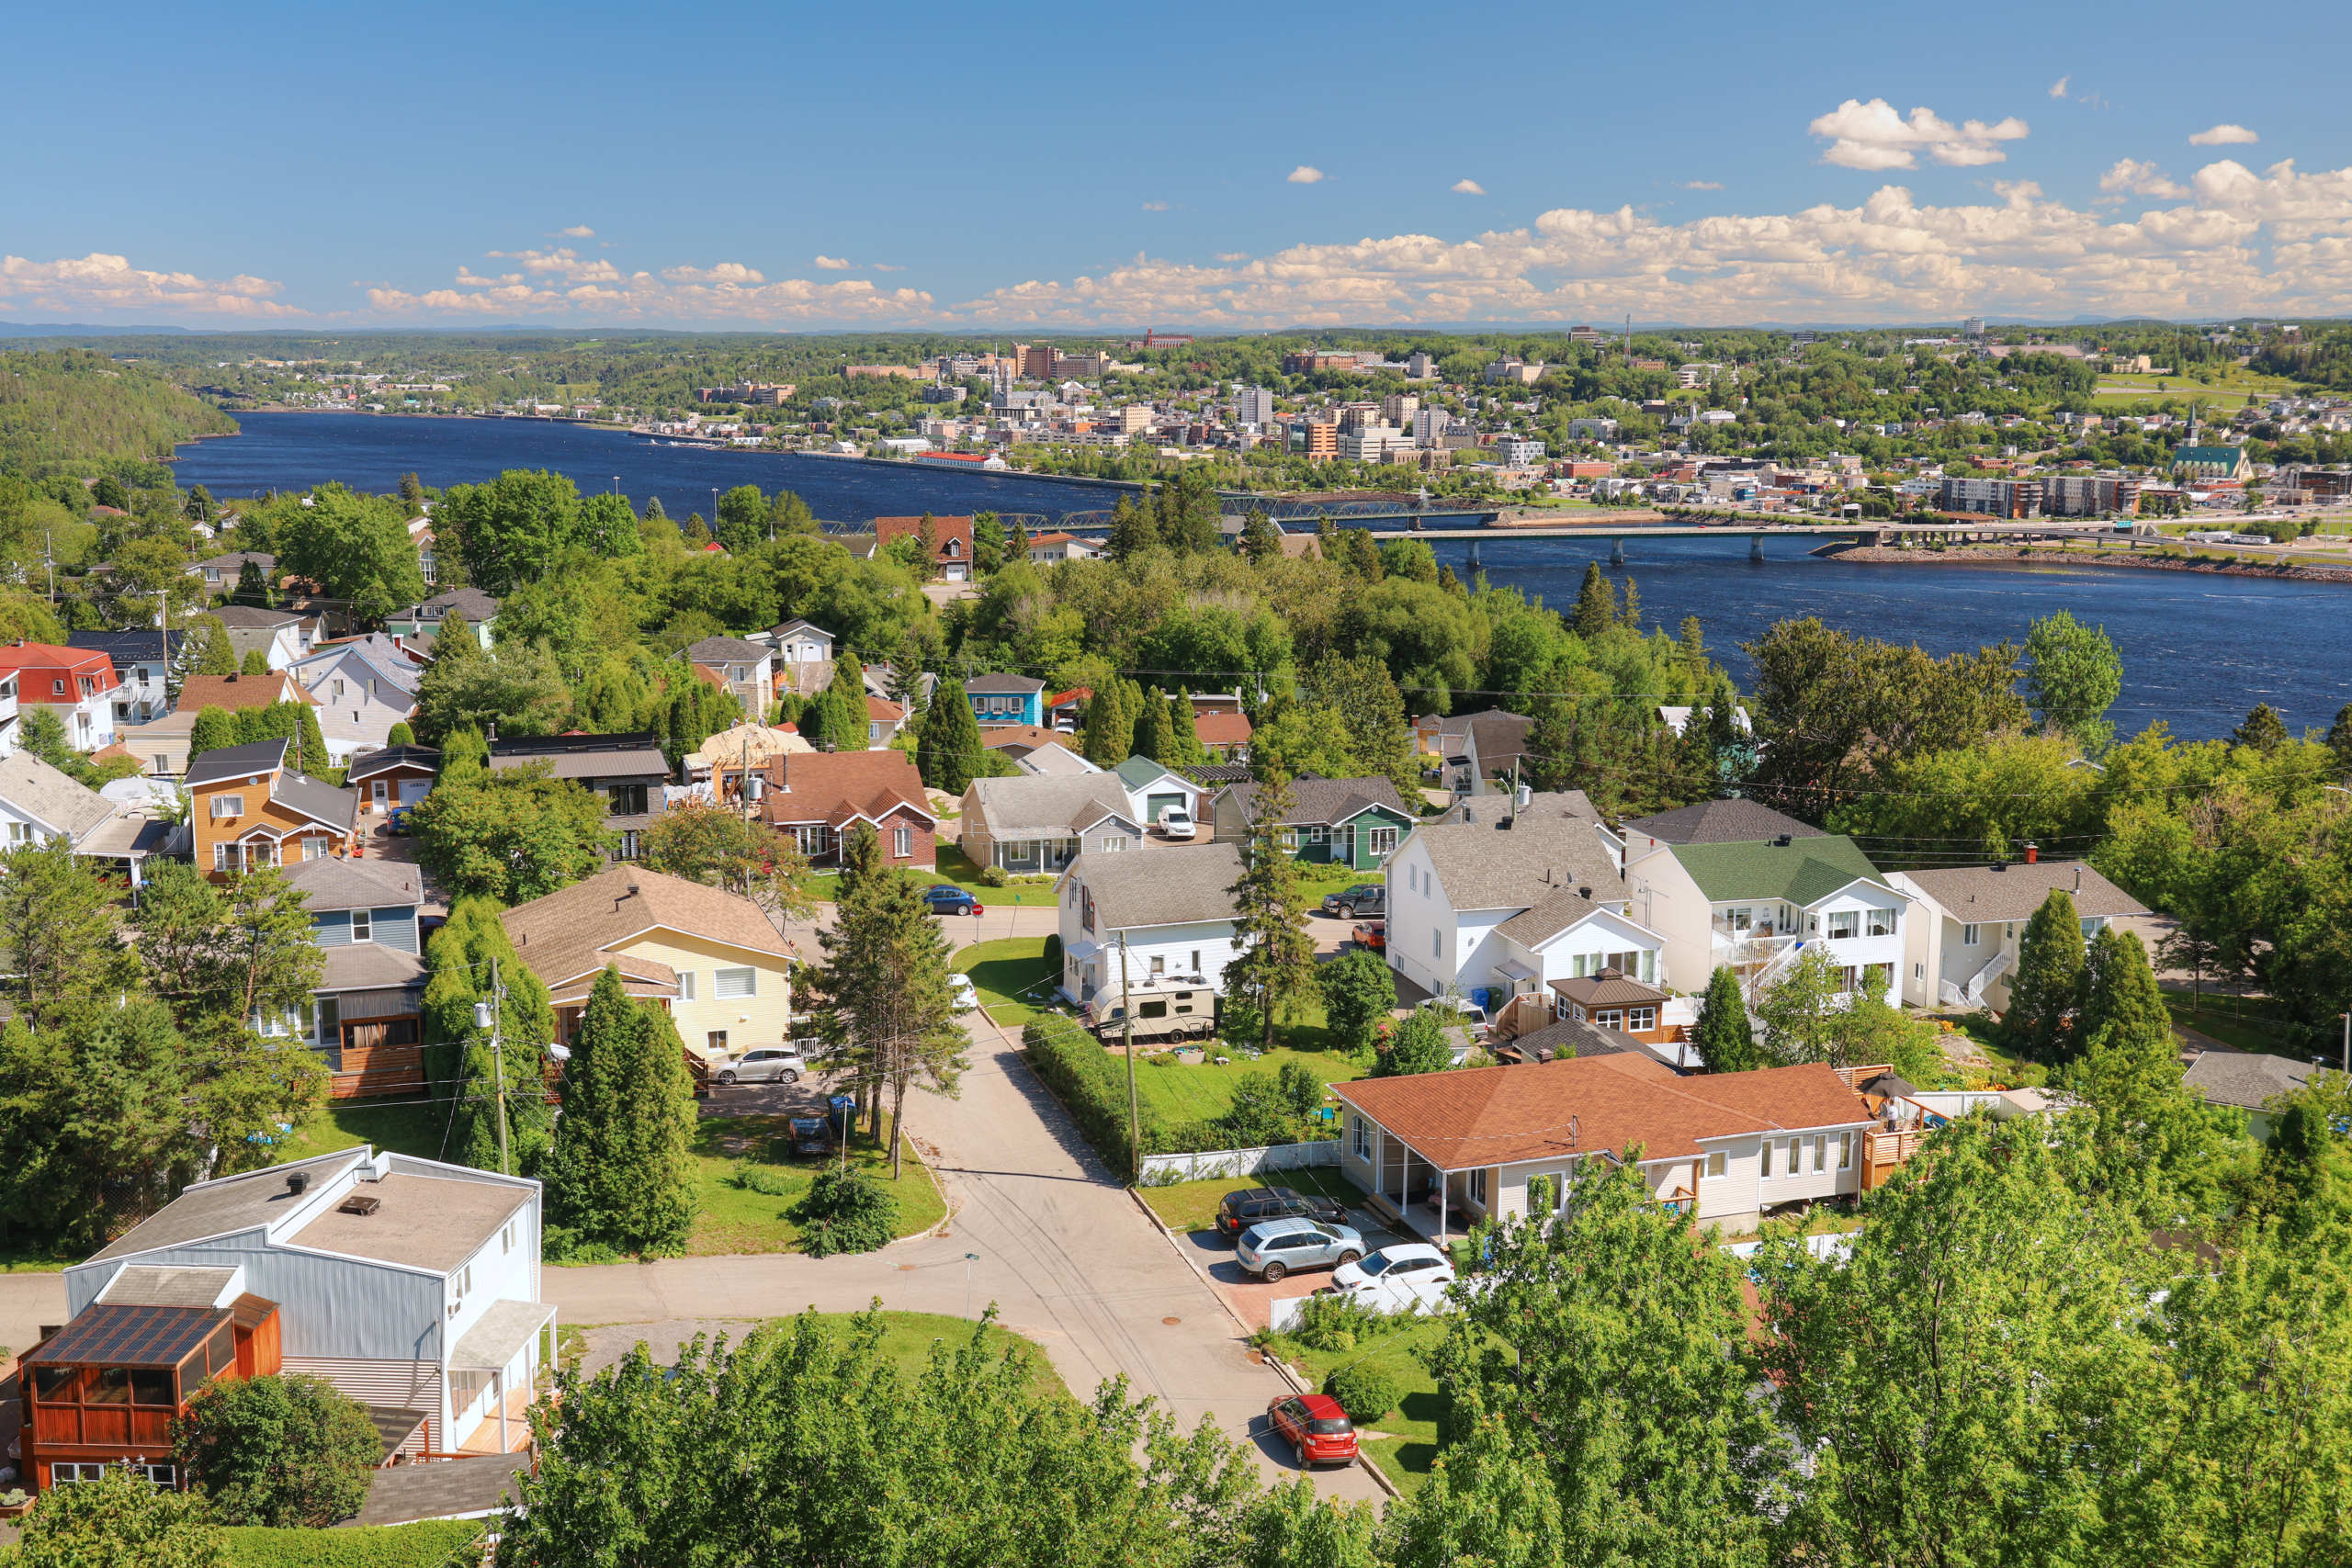 Image of a Canadian city